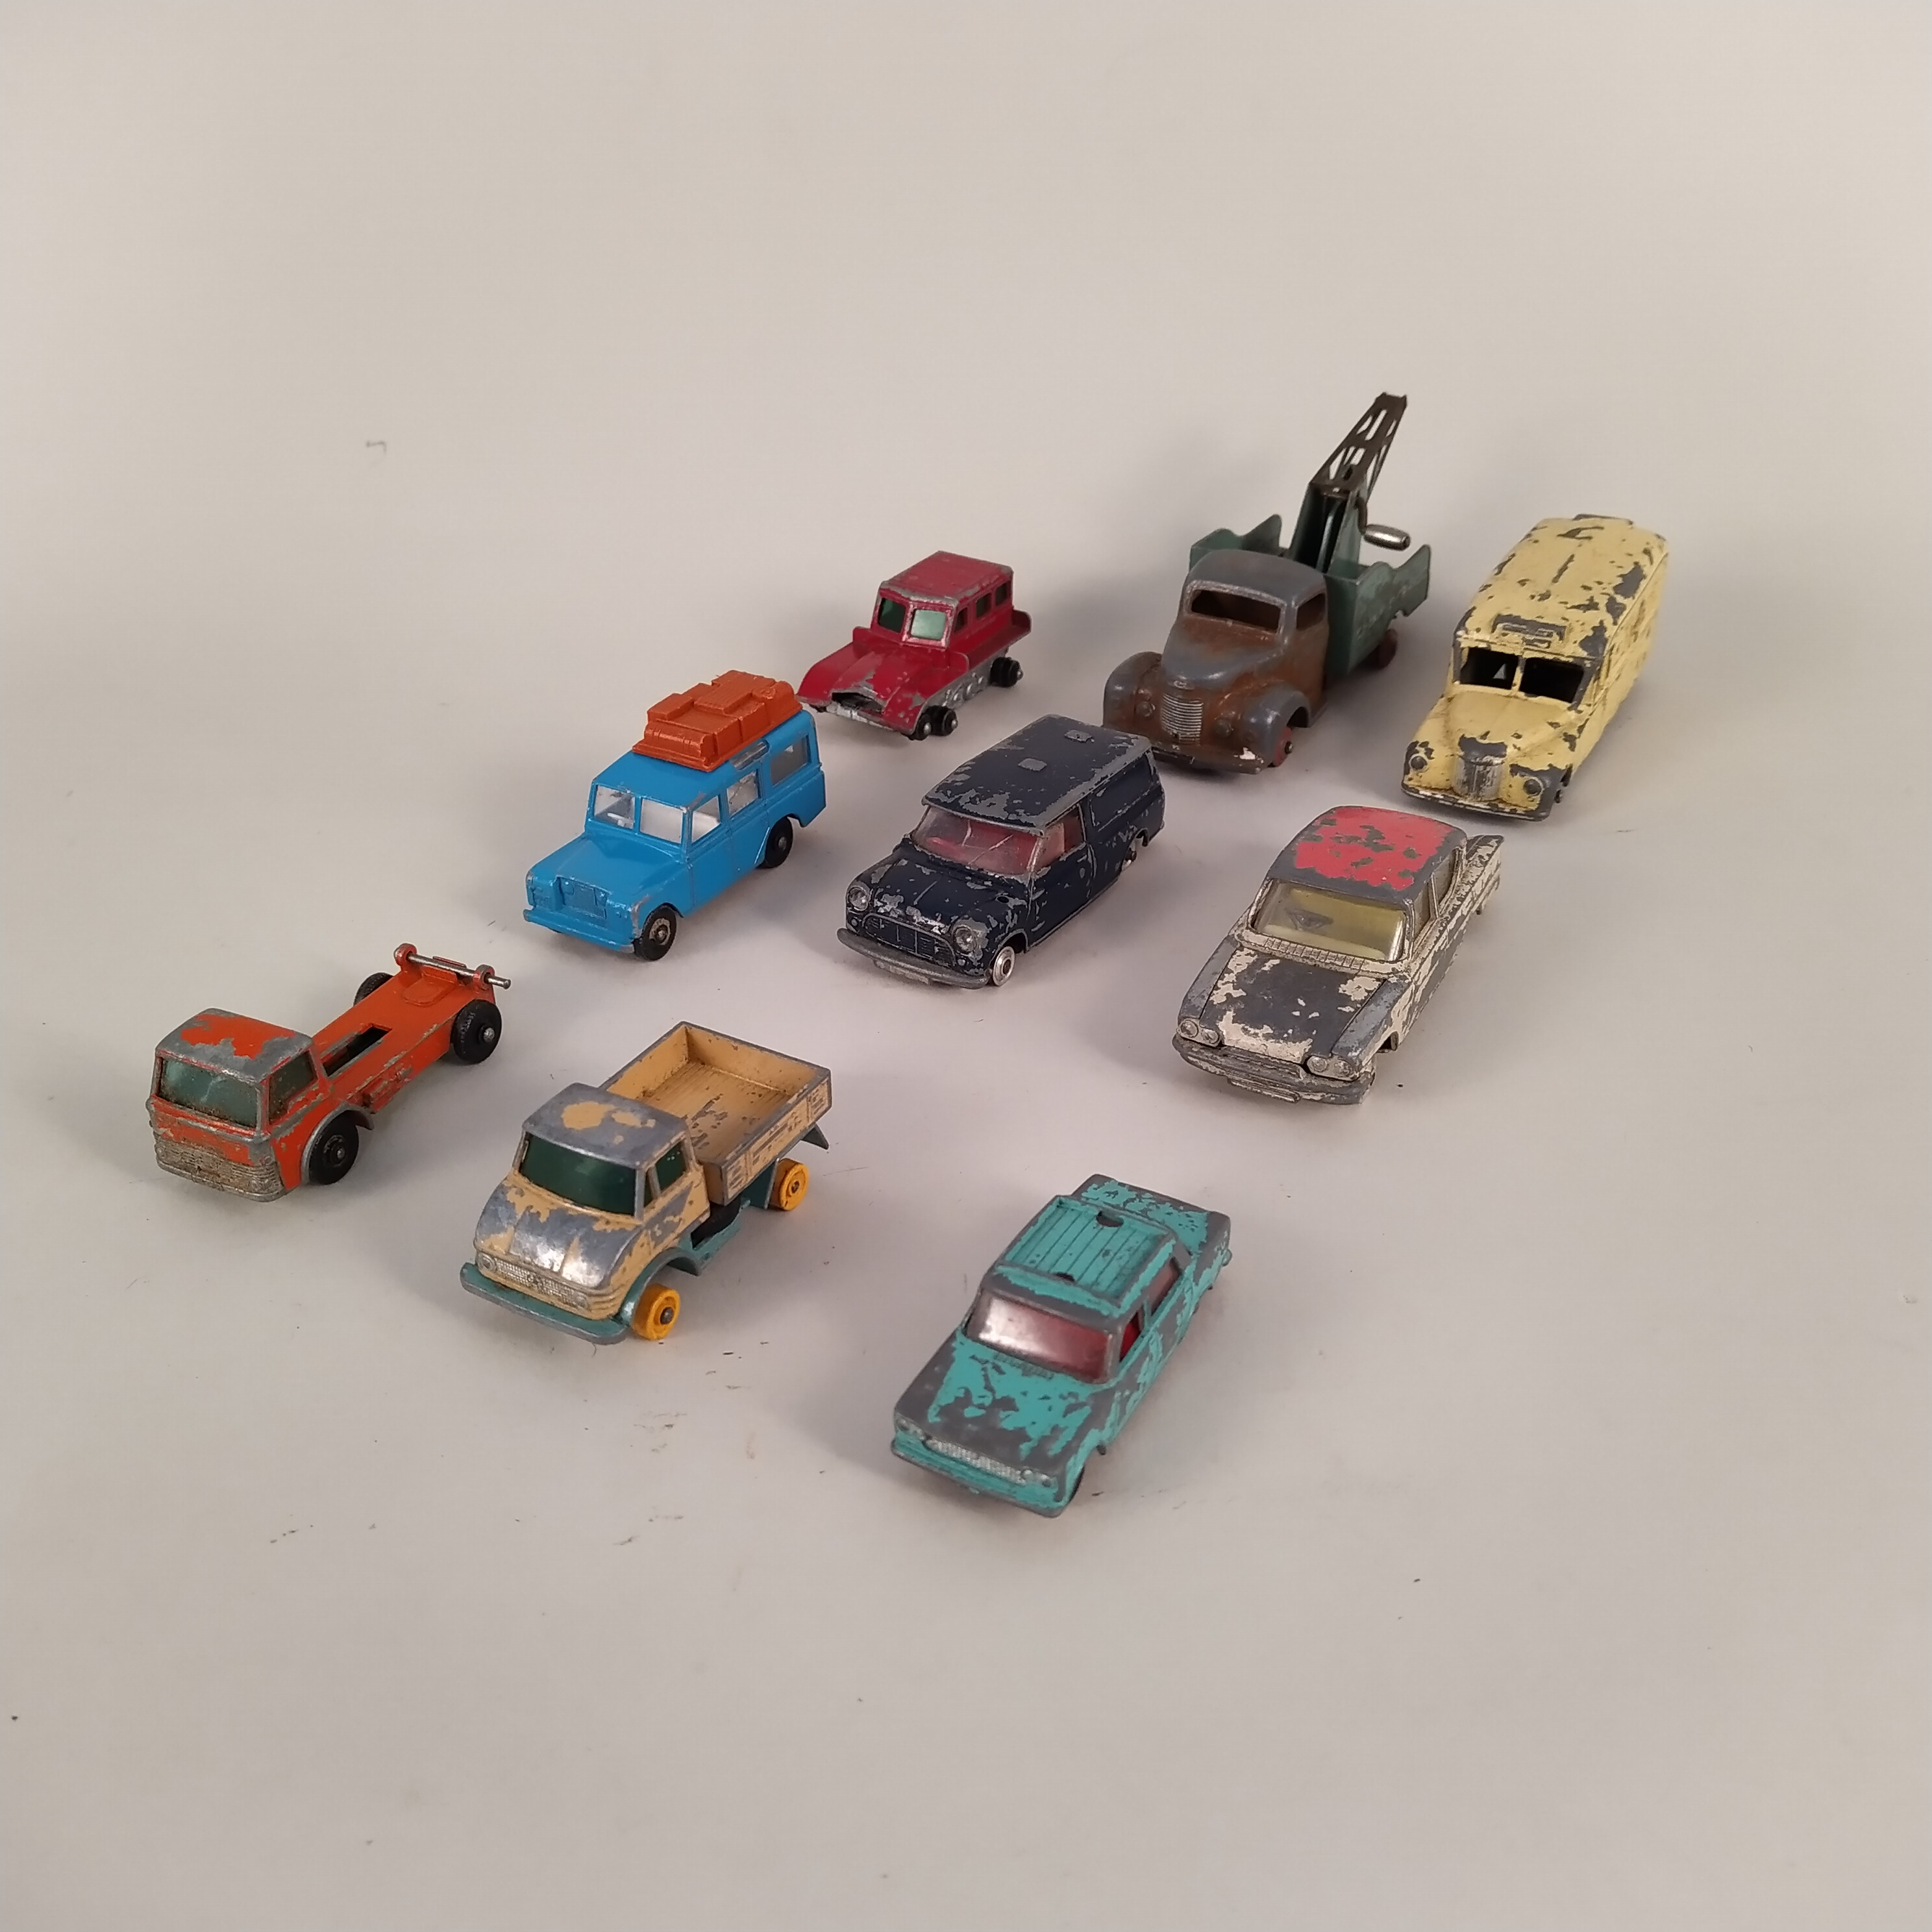 Vintage Dinky and Corgi toy cars (very playworn condition, some lacking wheels), - Image 2 of 3